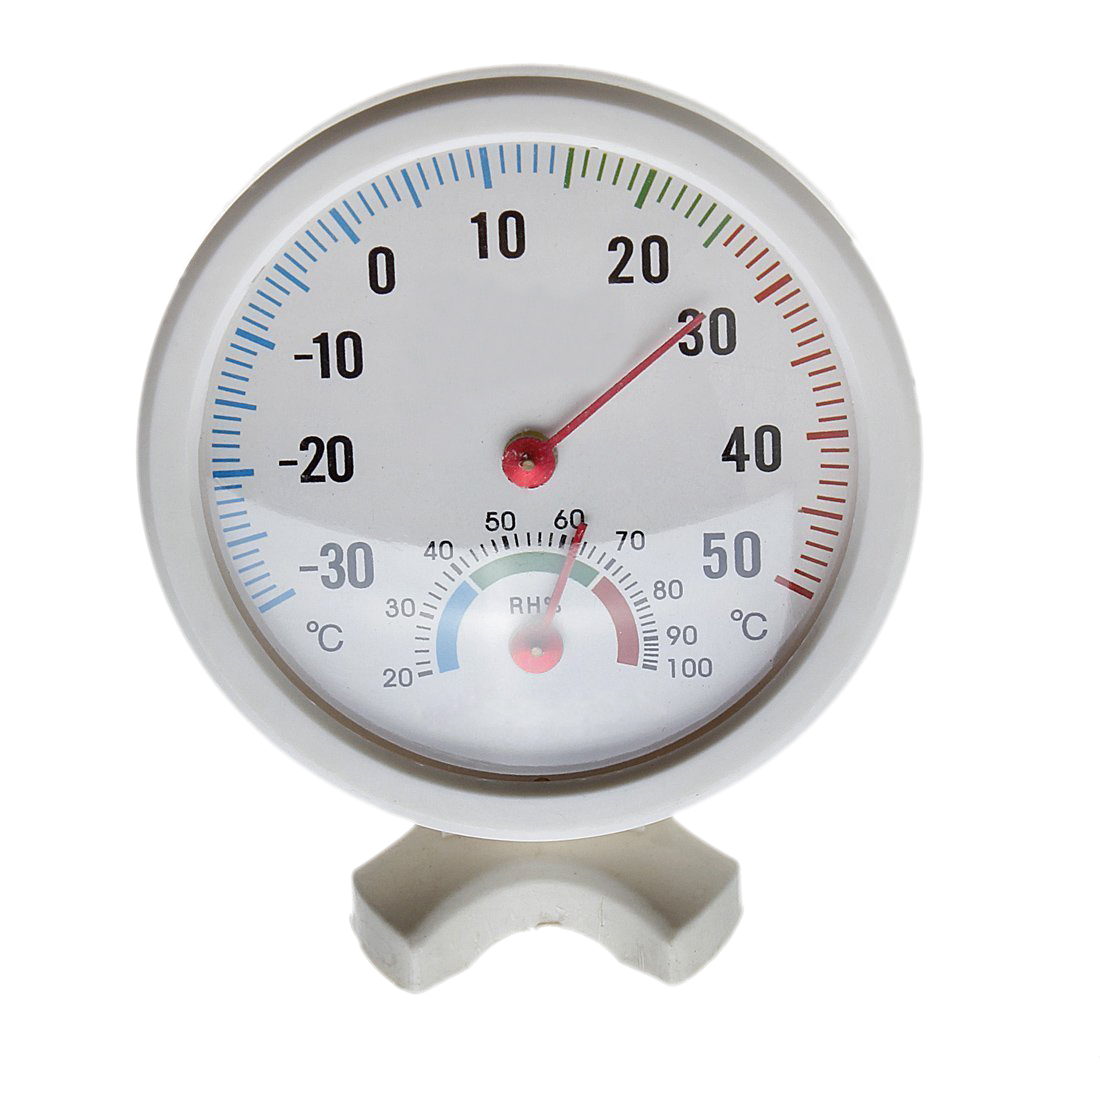 Thermometre hygrometre aiguille cadran rond testeur for Thermometres exterieurs